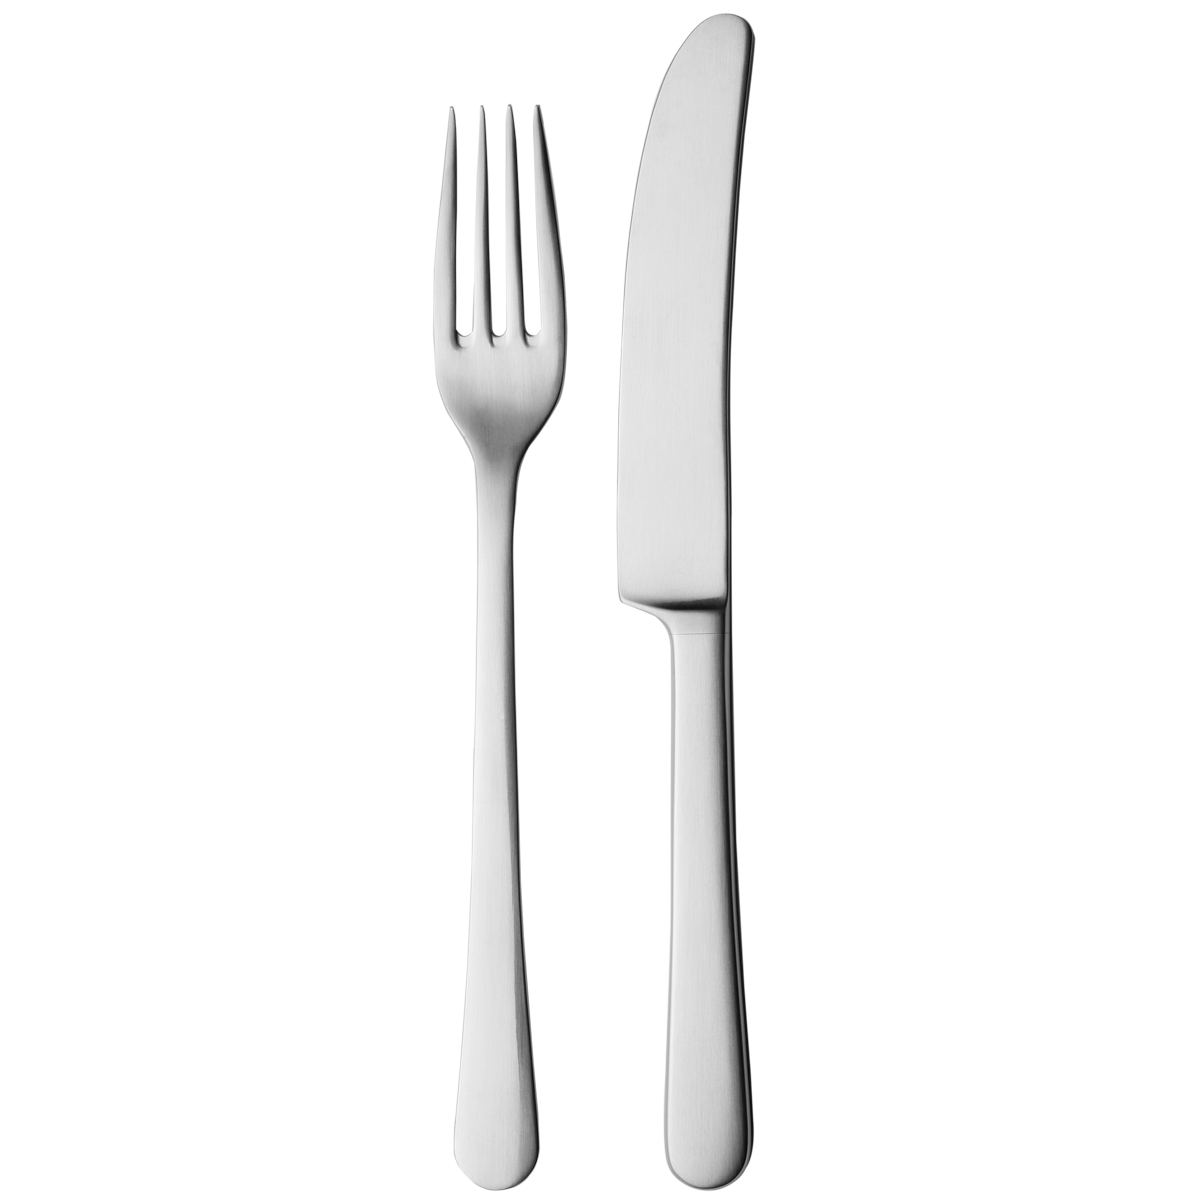 Fork And Knife Png, png collections at sccpre.cat.